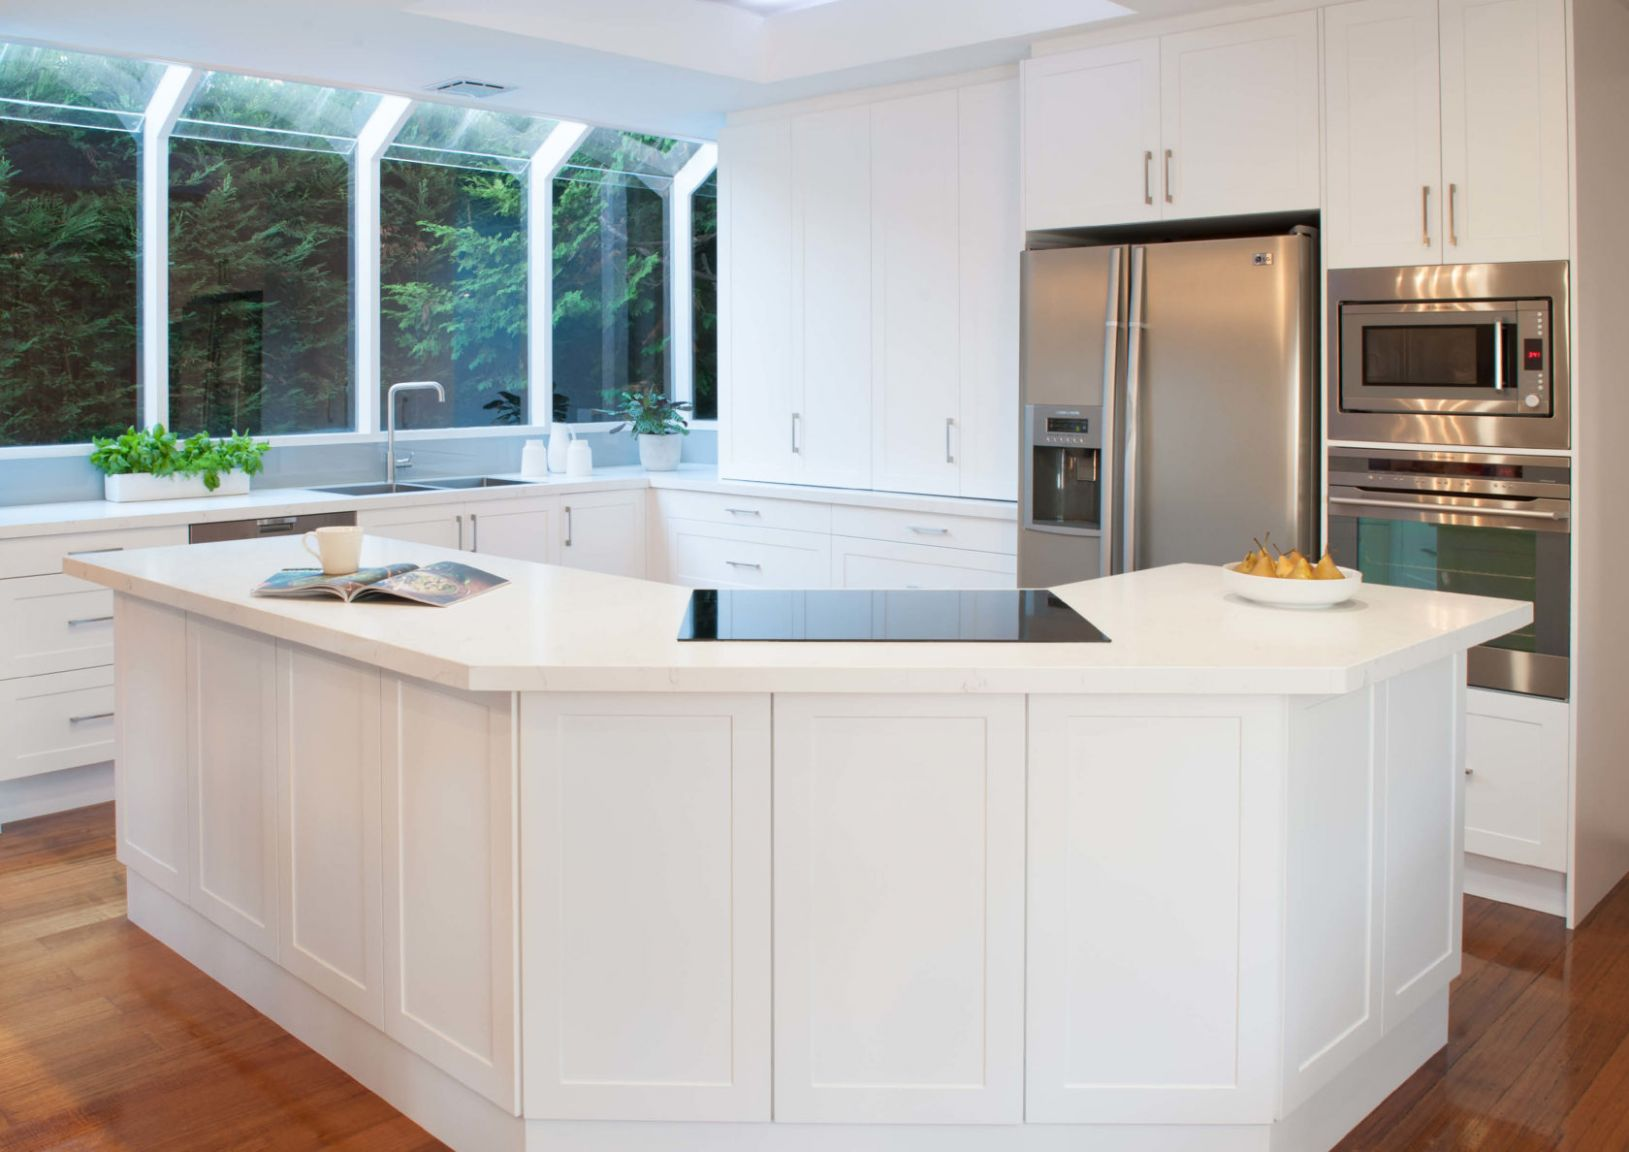 Melbourne Kitchens | On-time Kitchen Renovations.